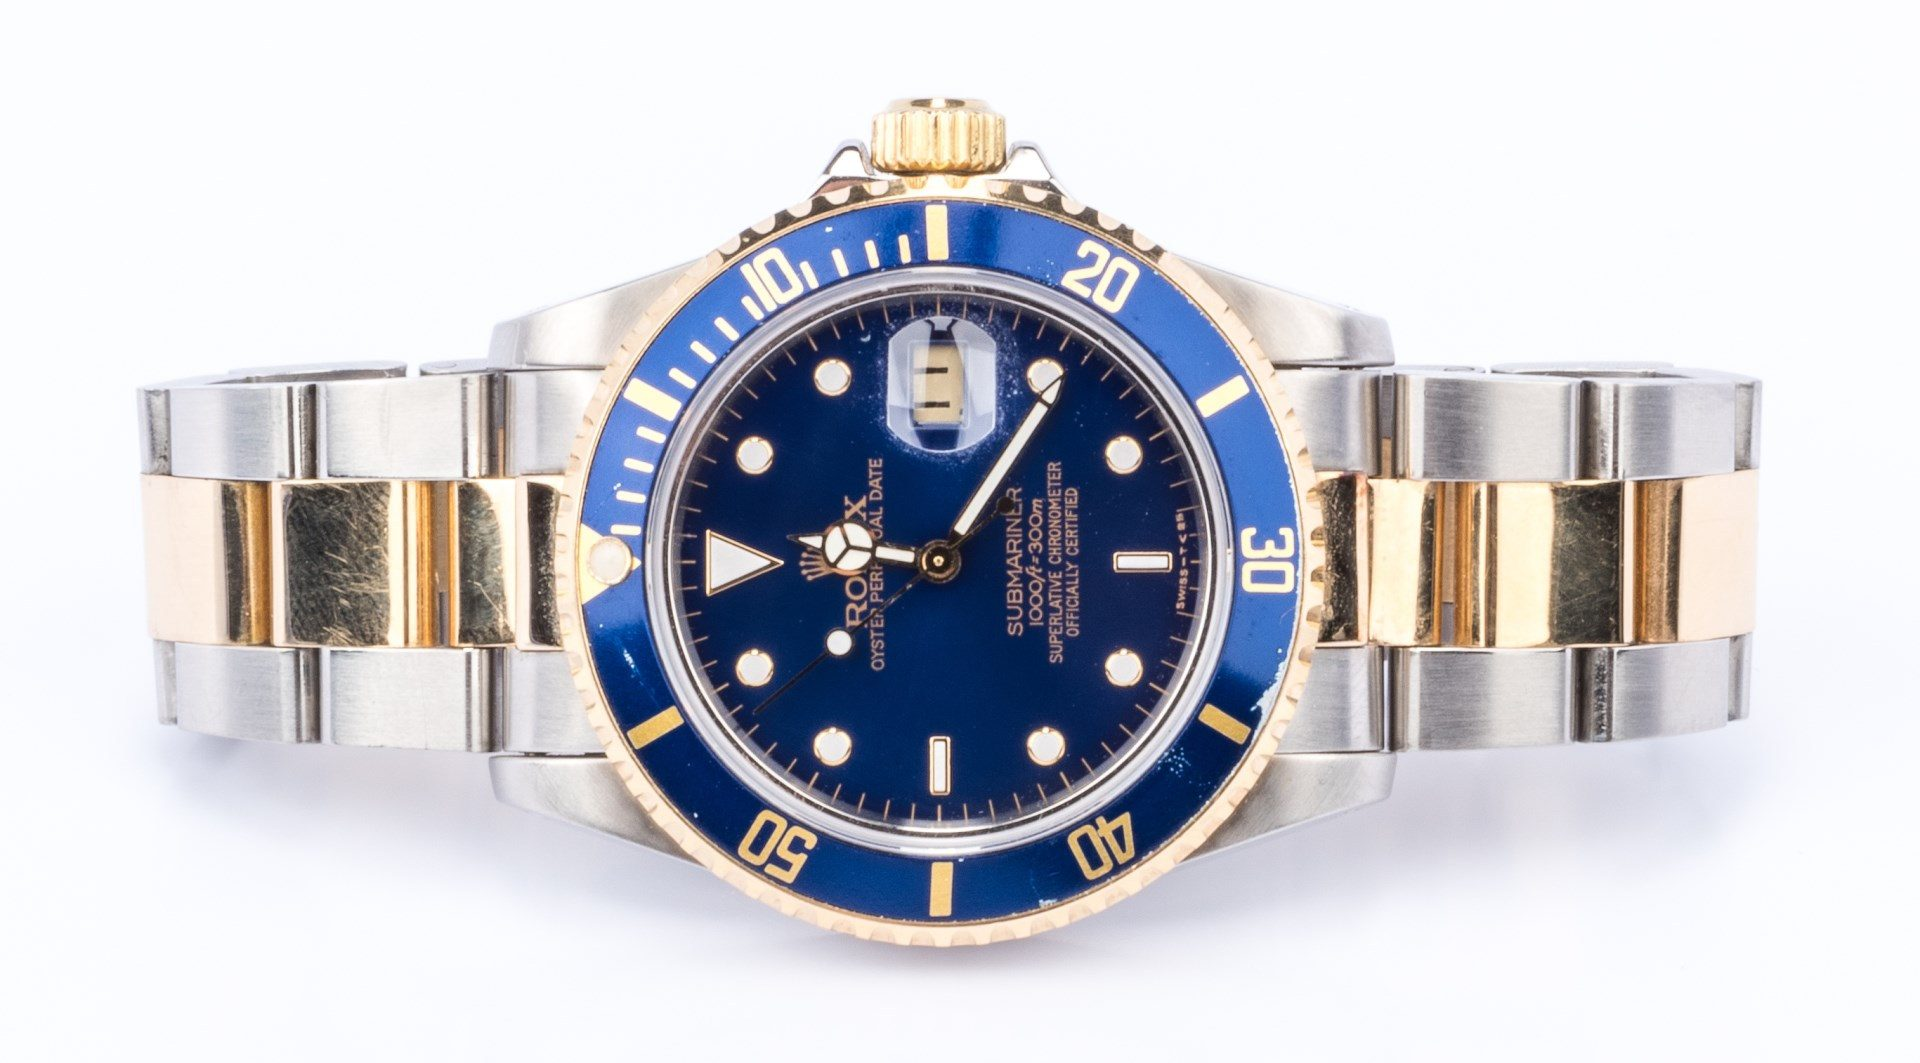 Lot 41: Gents Rolex 18K/Steel Submariner Blue face